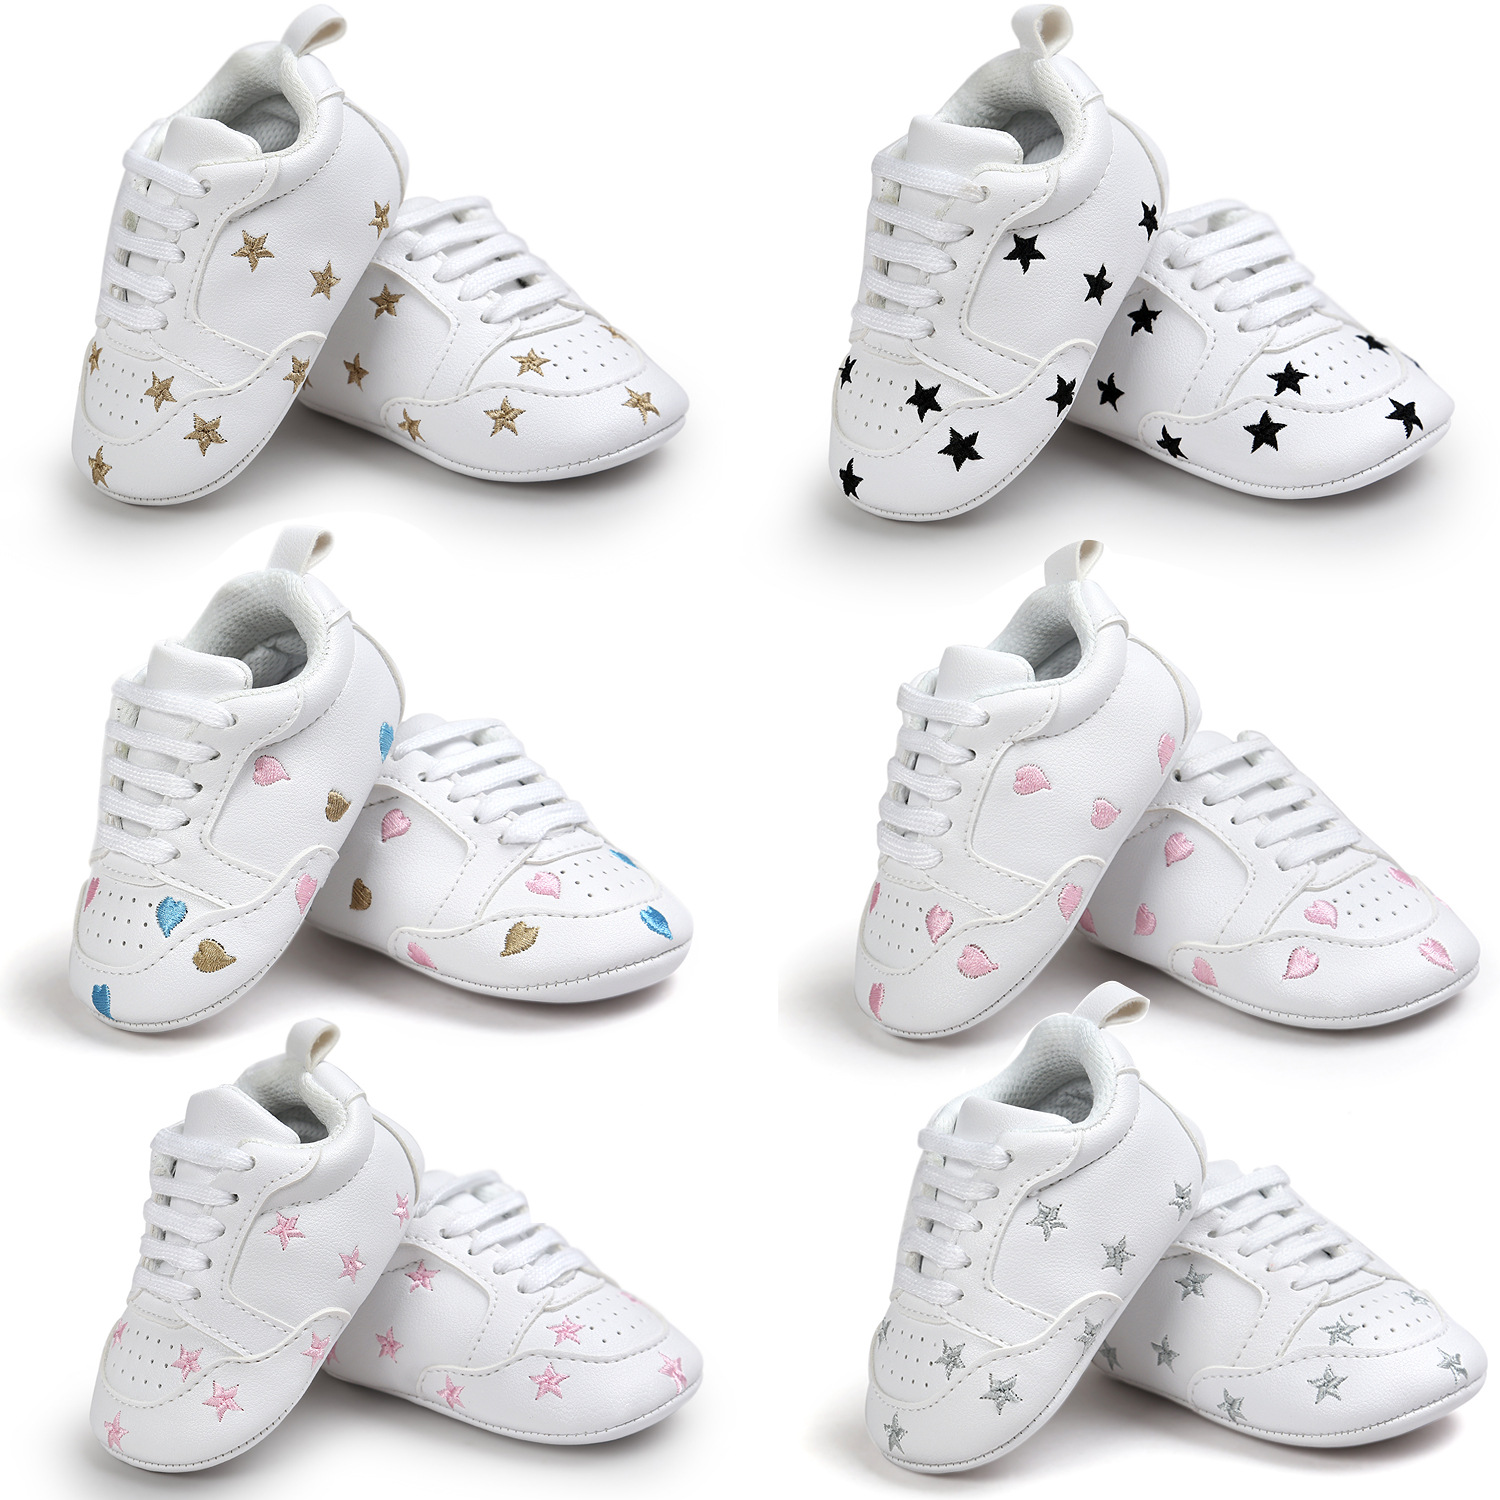 Toddler Boy Sneakers color Star Baby Shoes All Seasons Soft Bottom